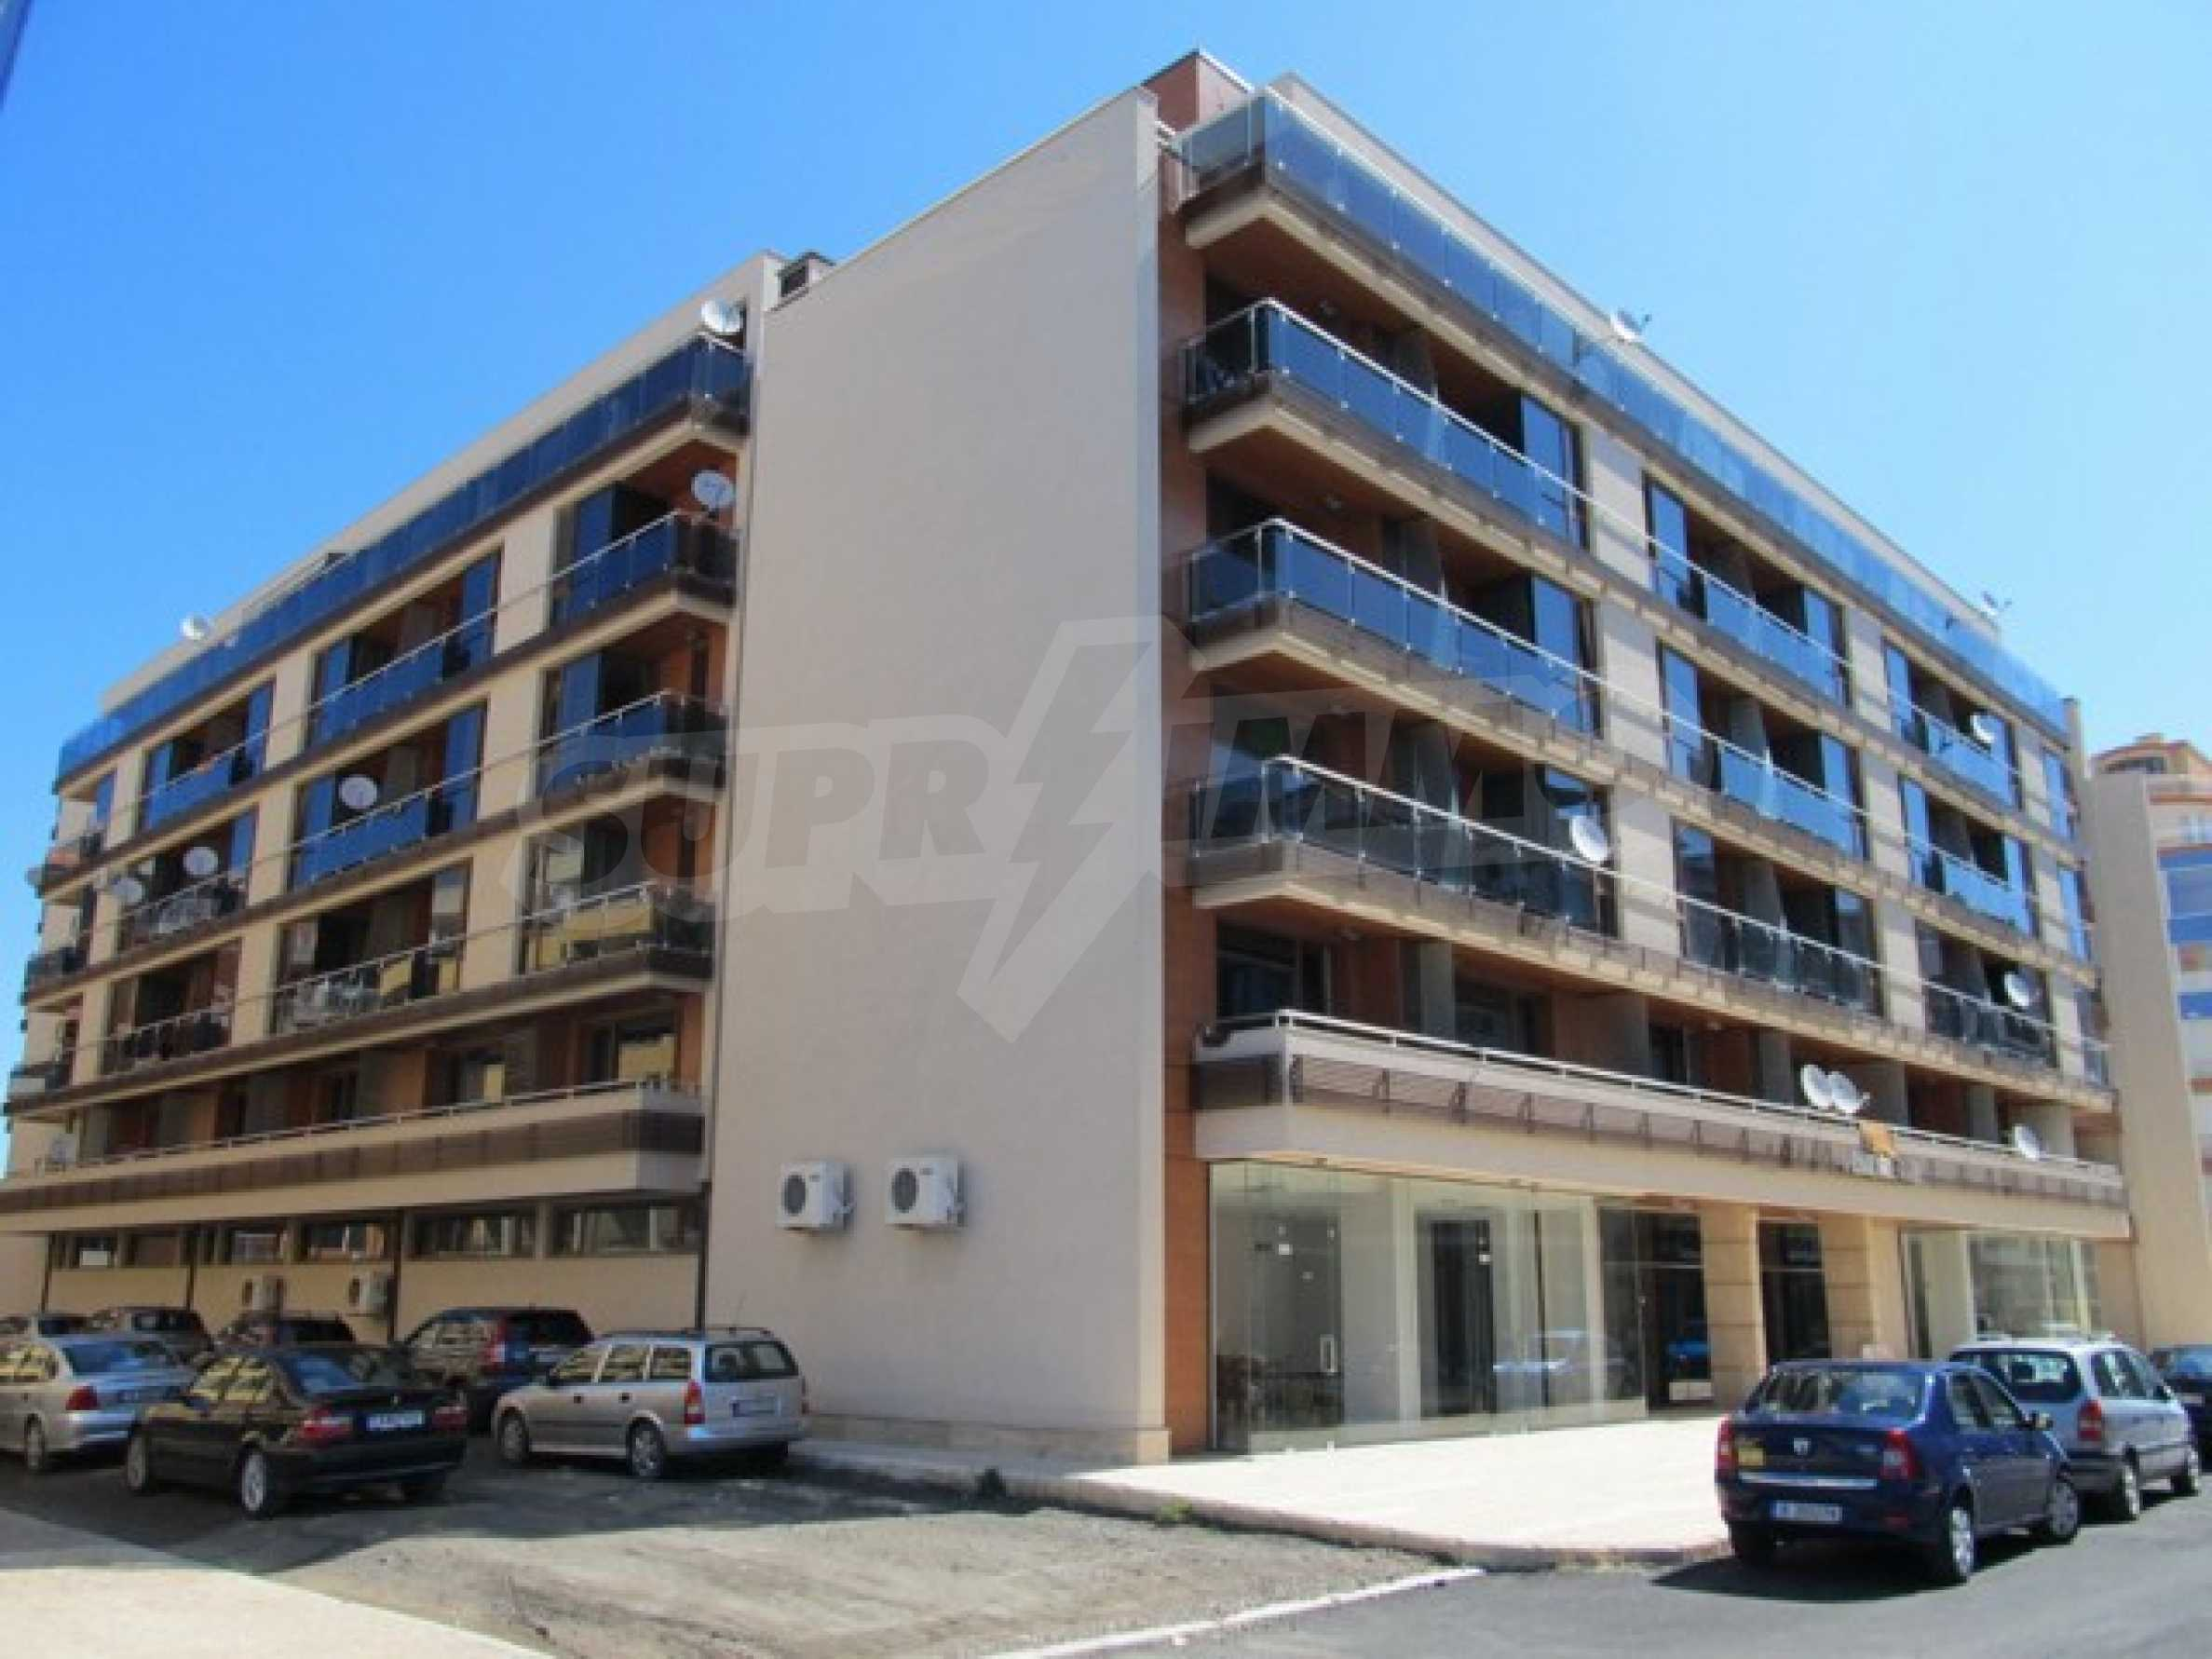 Apartments for sale in Pomorie